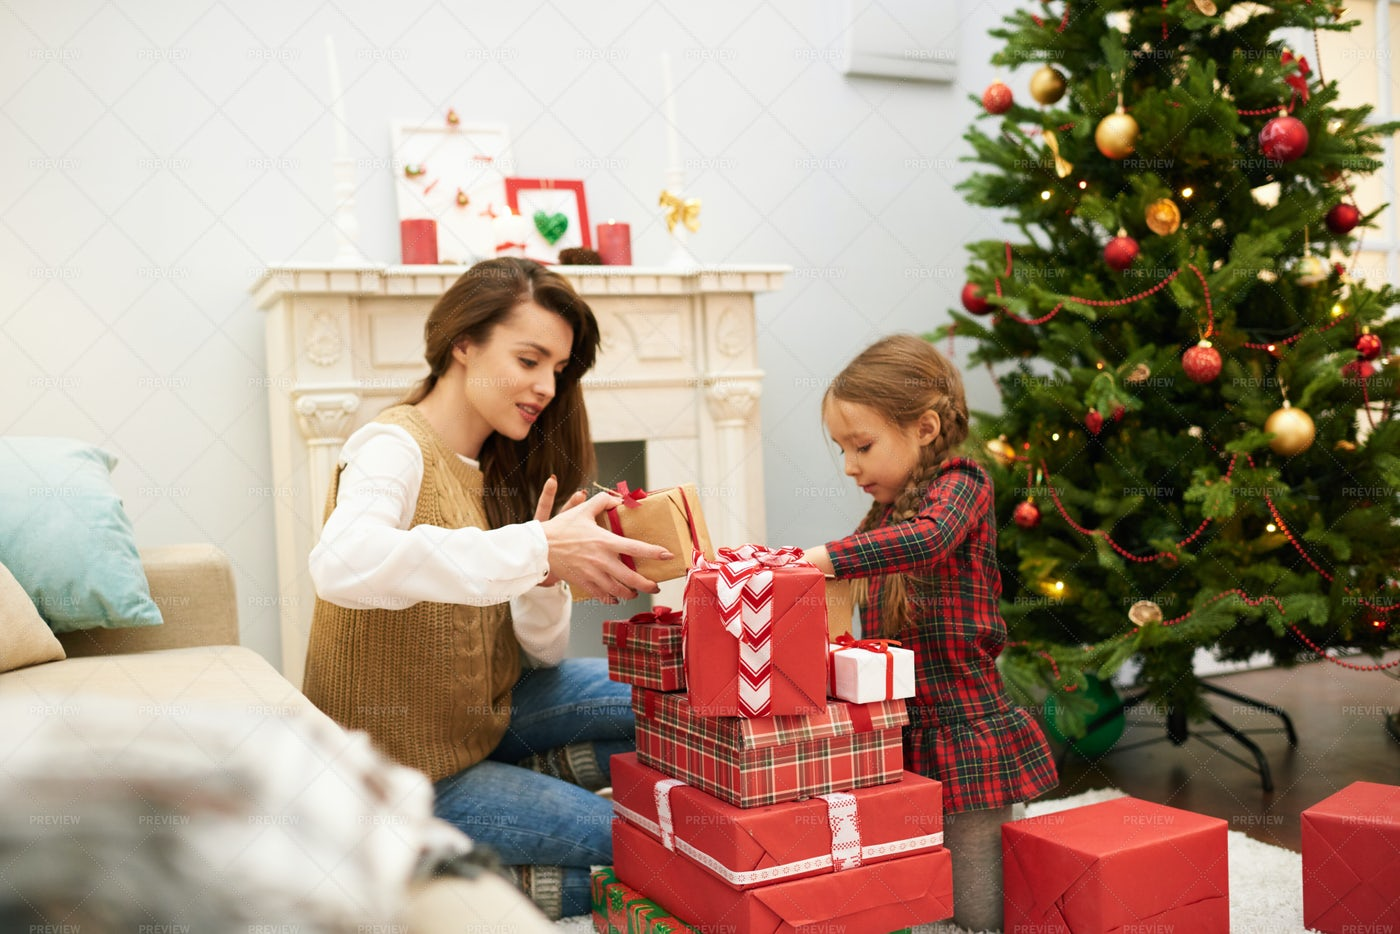 Celebrating Boxing Day At Home: Stock Photos